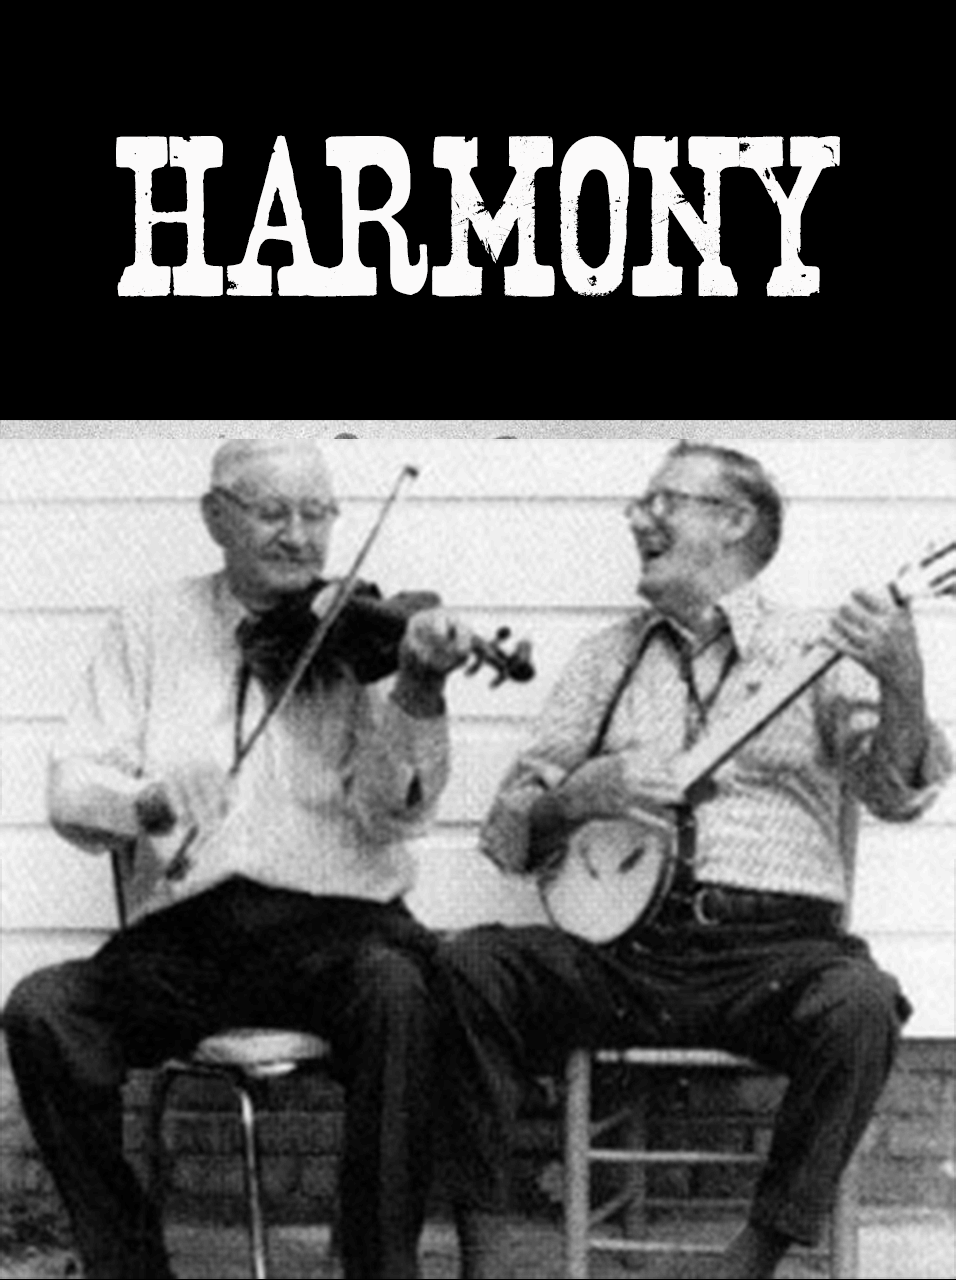 Harmony - Concept.png